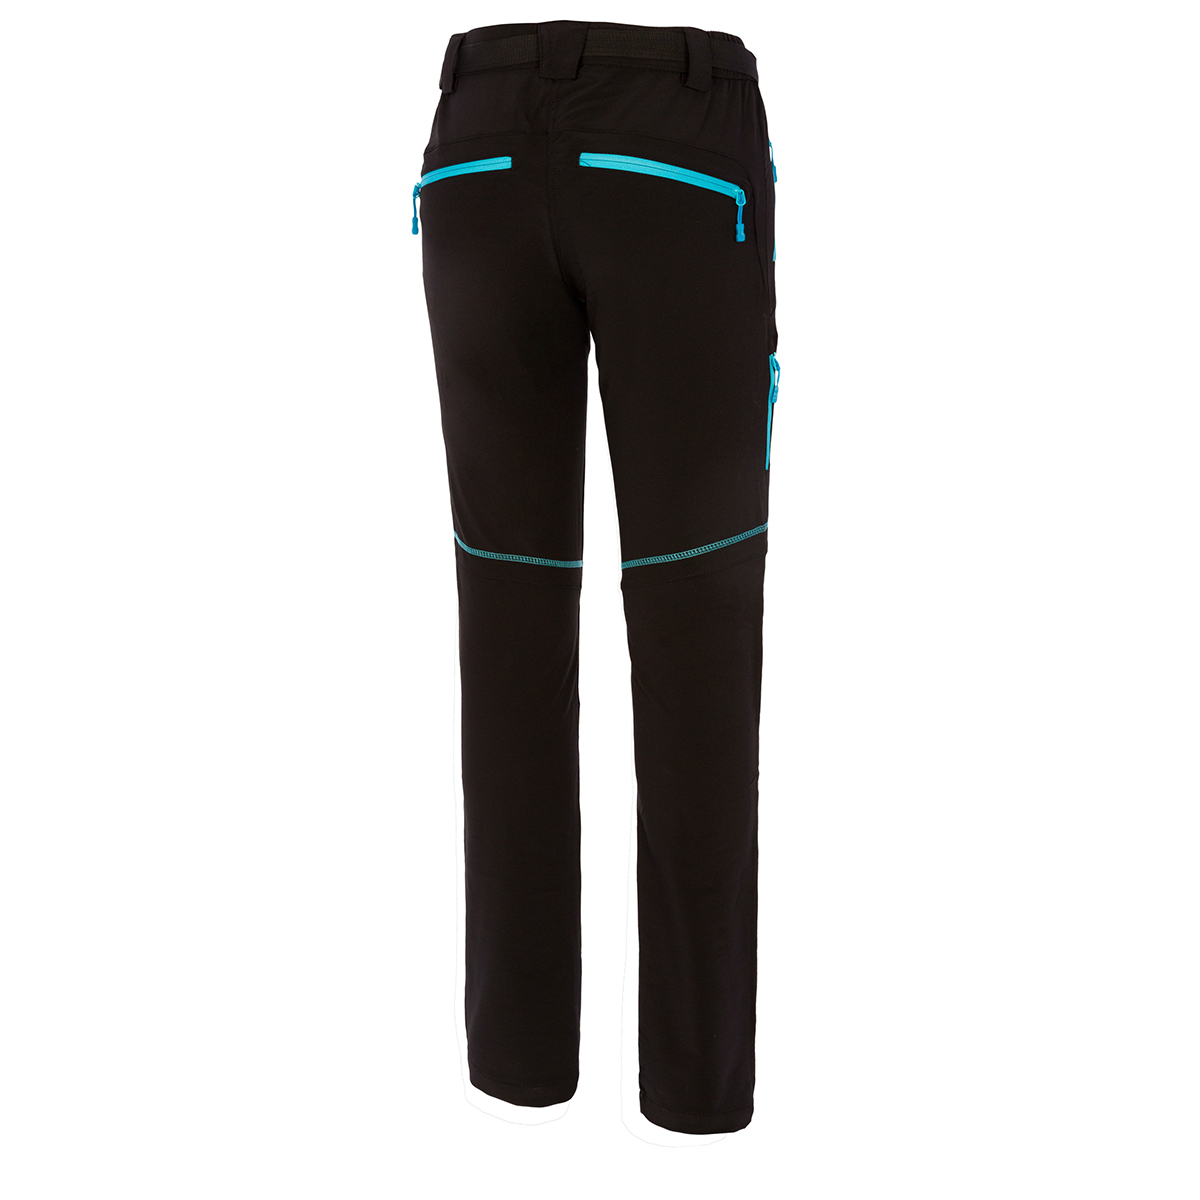 WOMAN'S FORMOSA MOUNT STRECH PANT BLACK